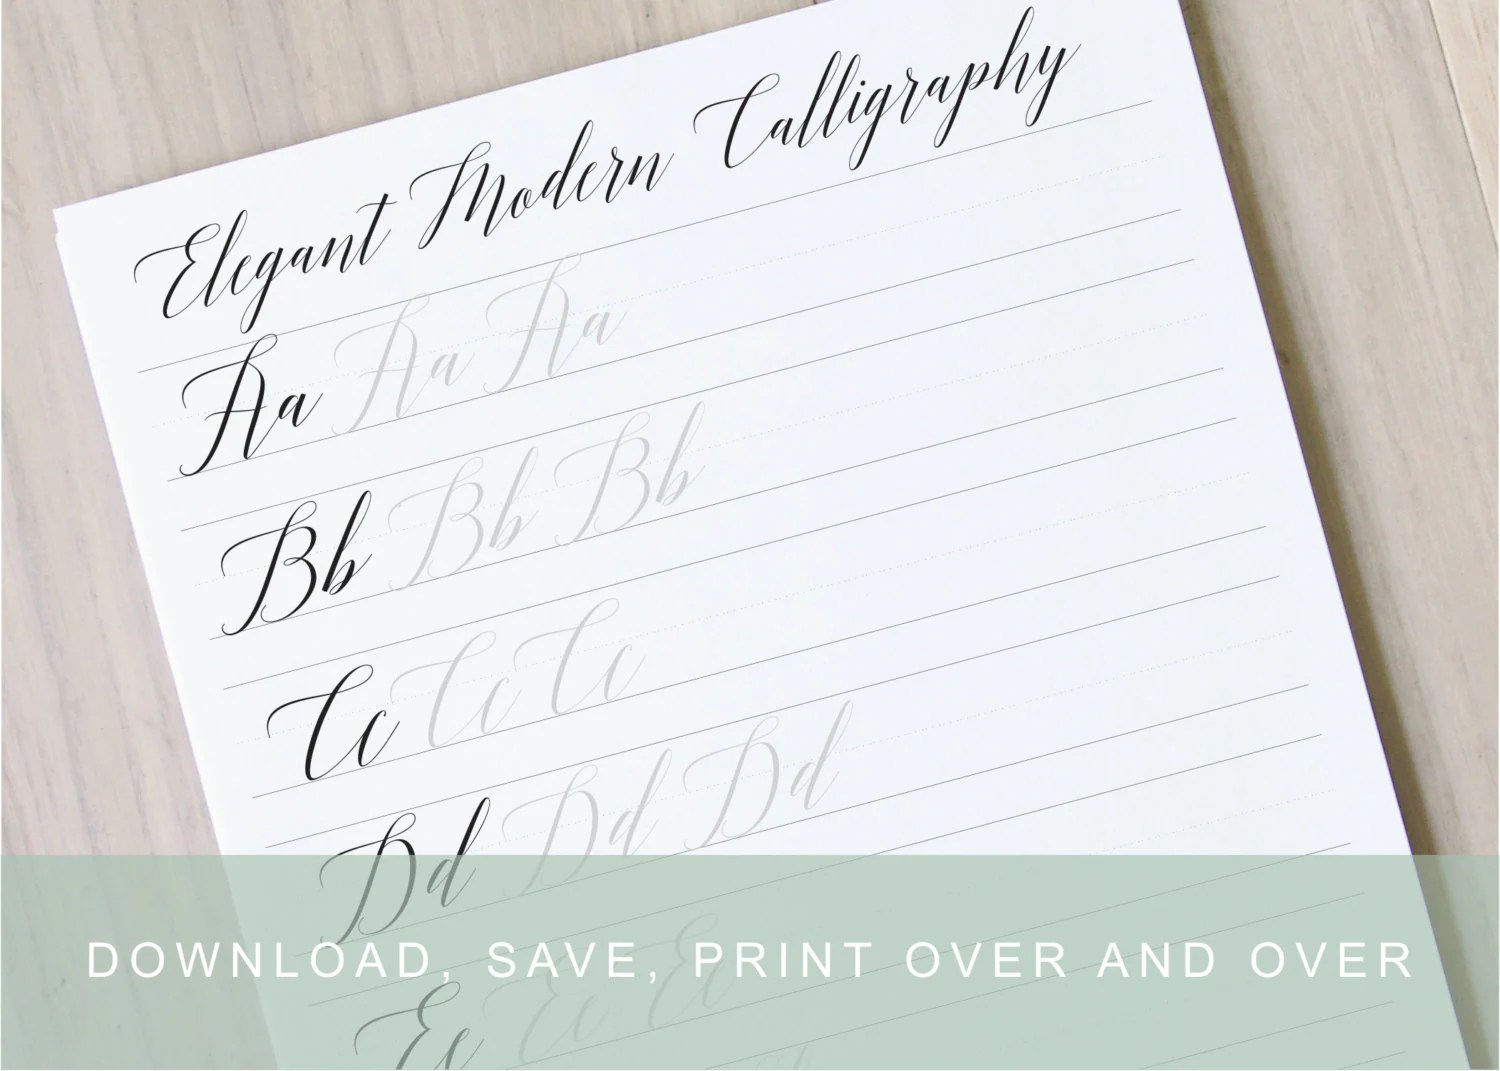 Elgant Modern Calligraphy Lettering Worksheets Calligraphy